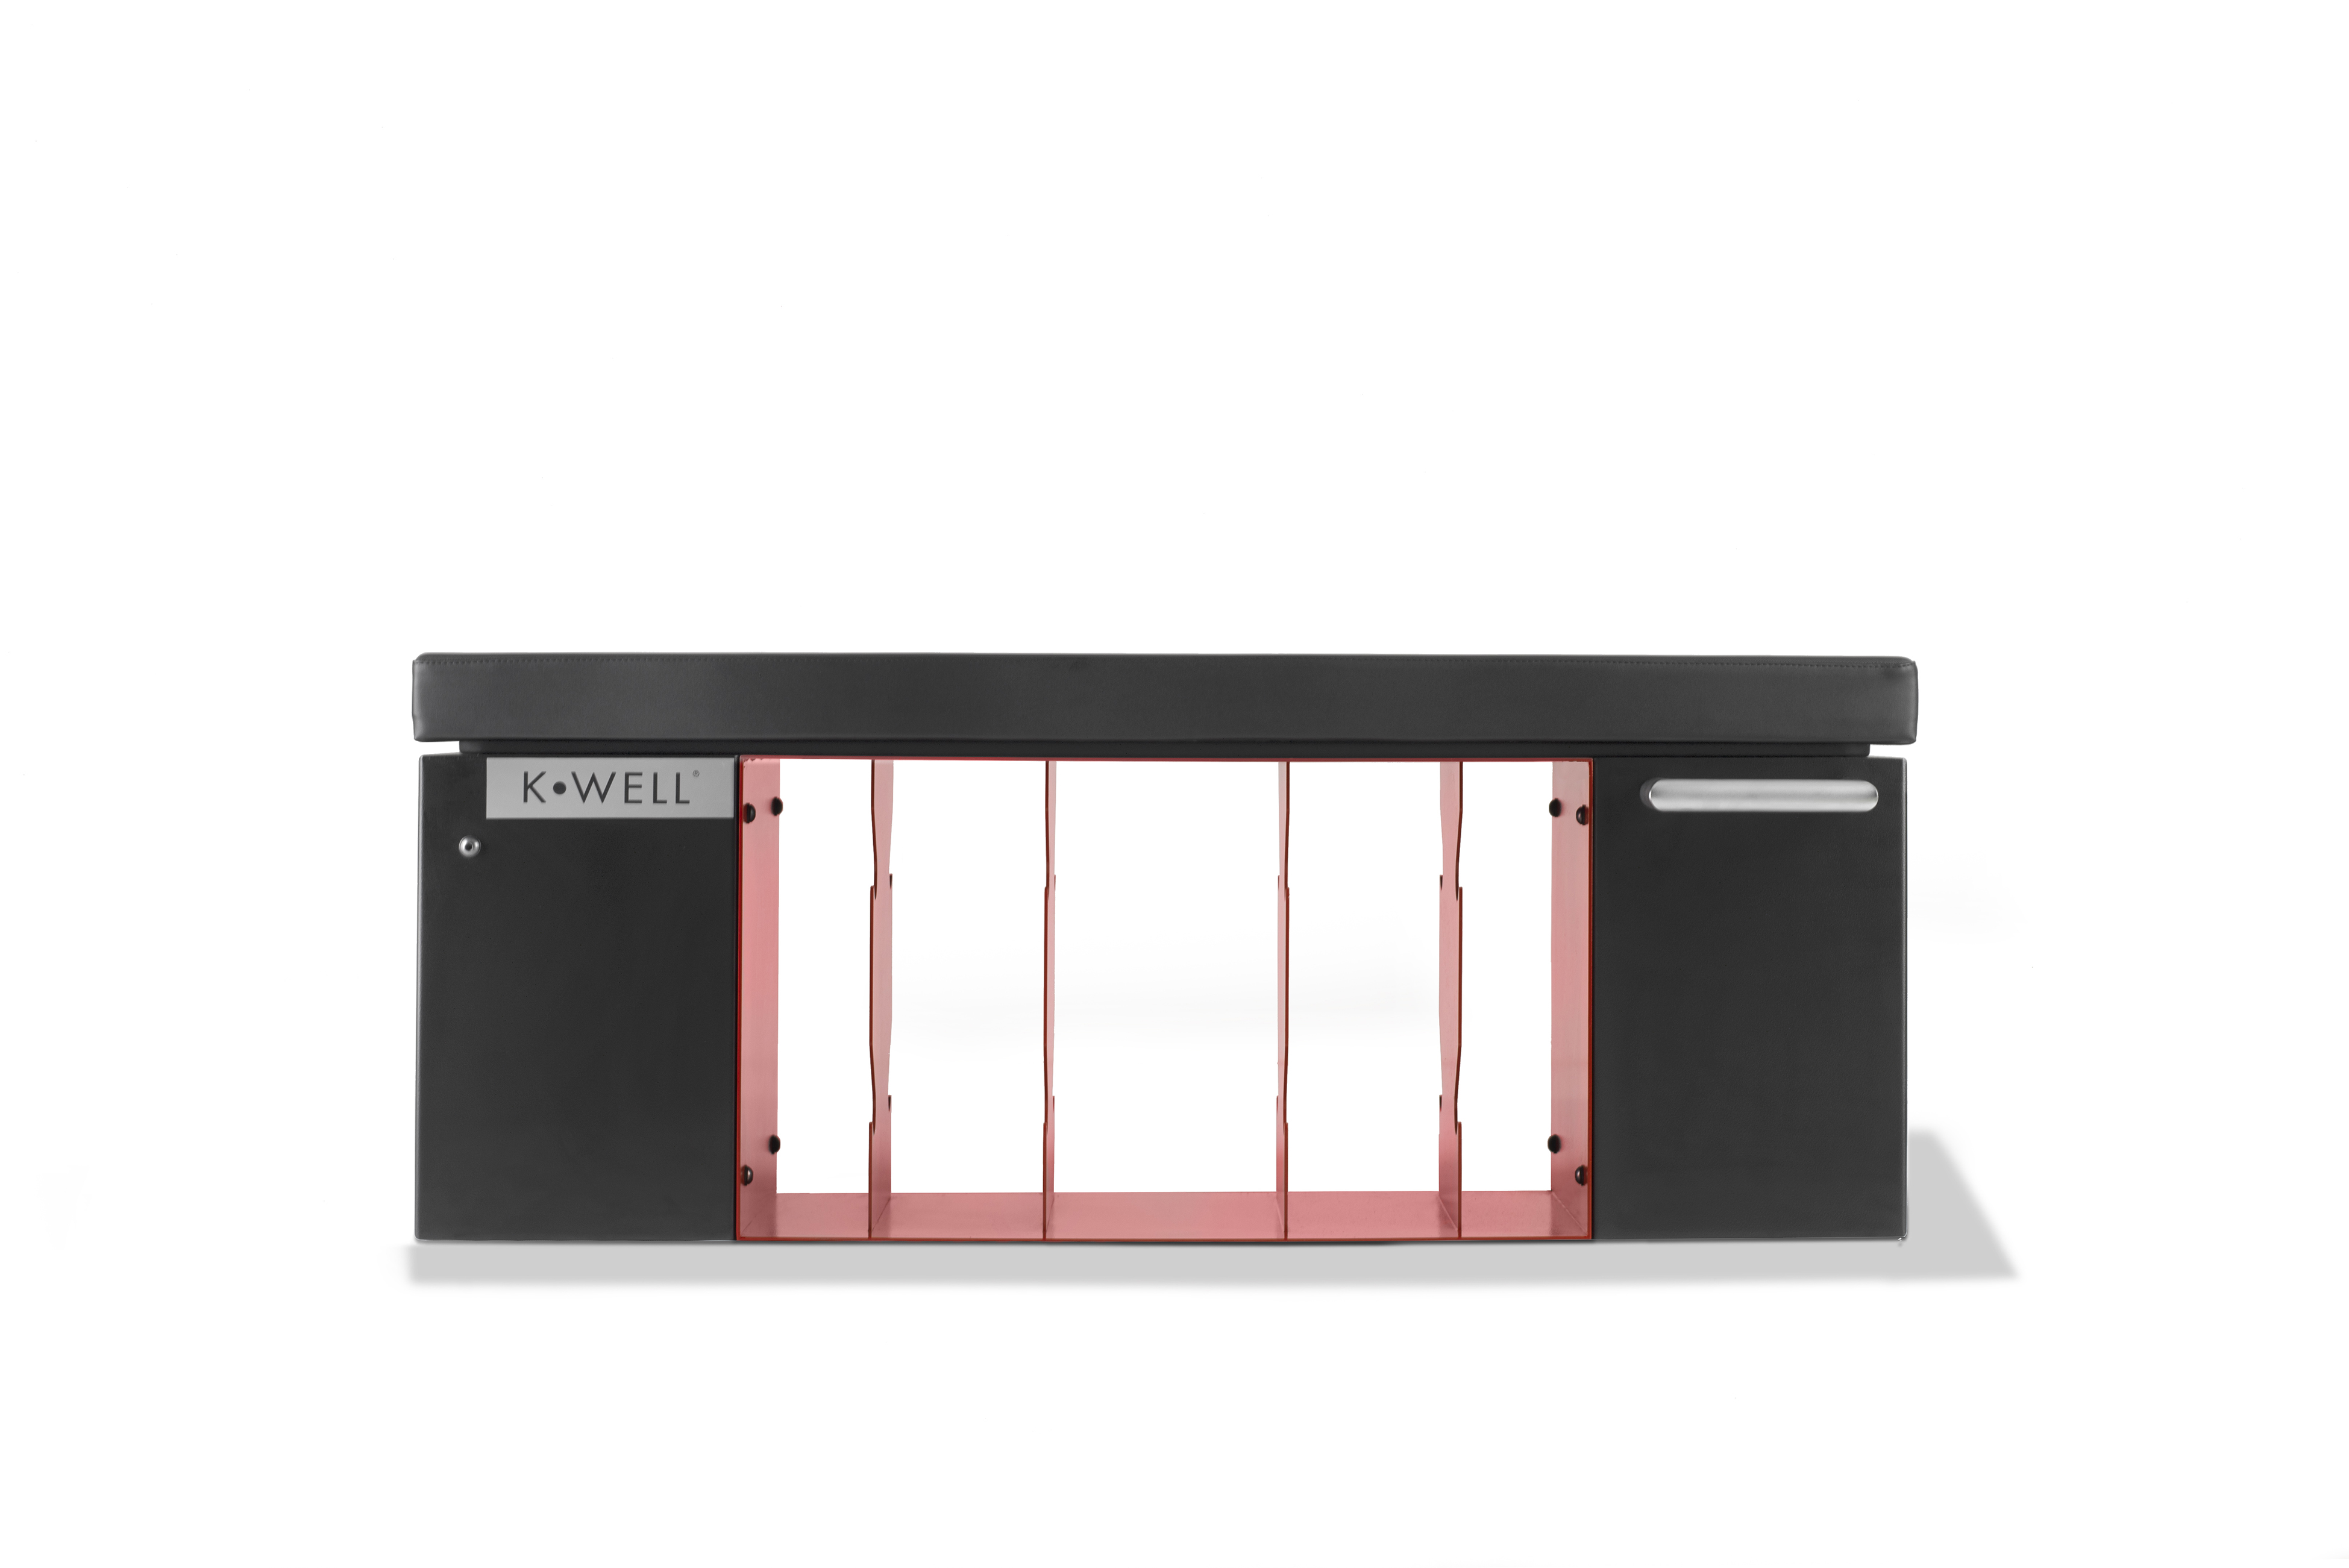 Kwell Iron Bench - zwart/rood - excl. accessoires